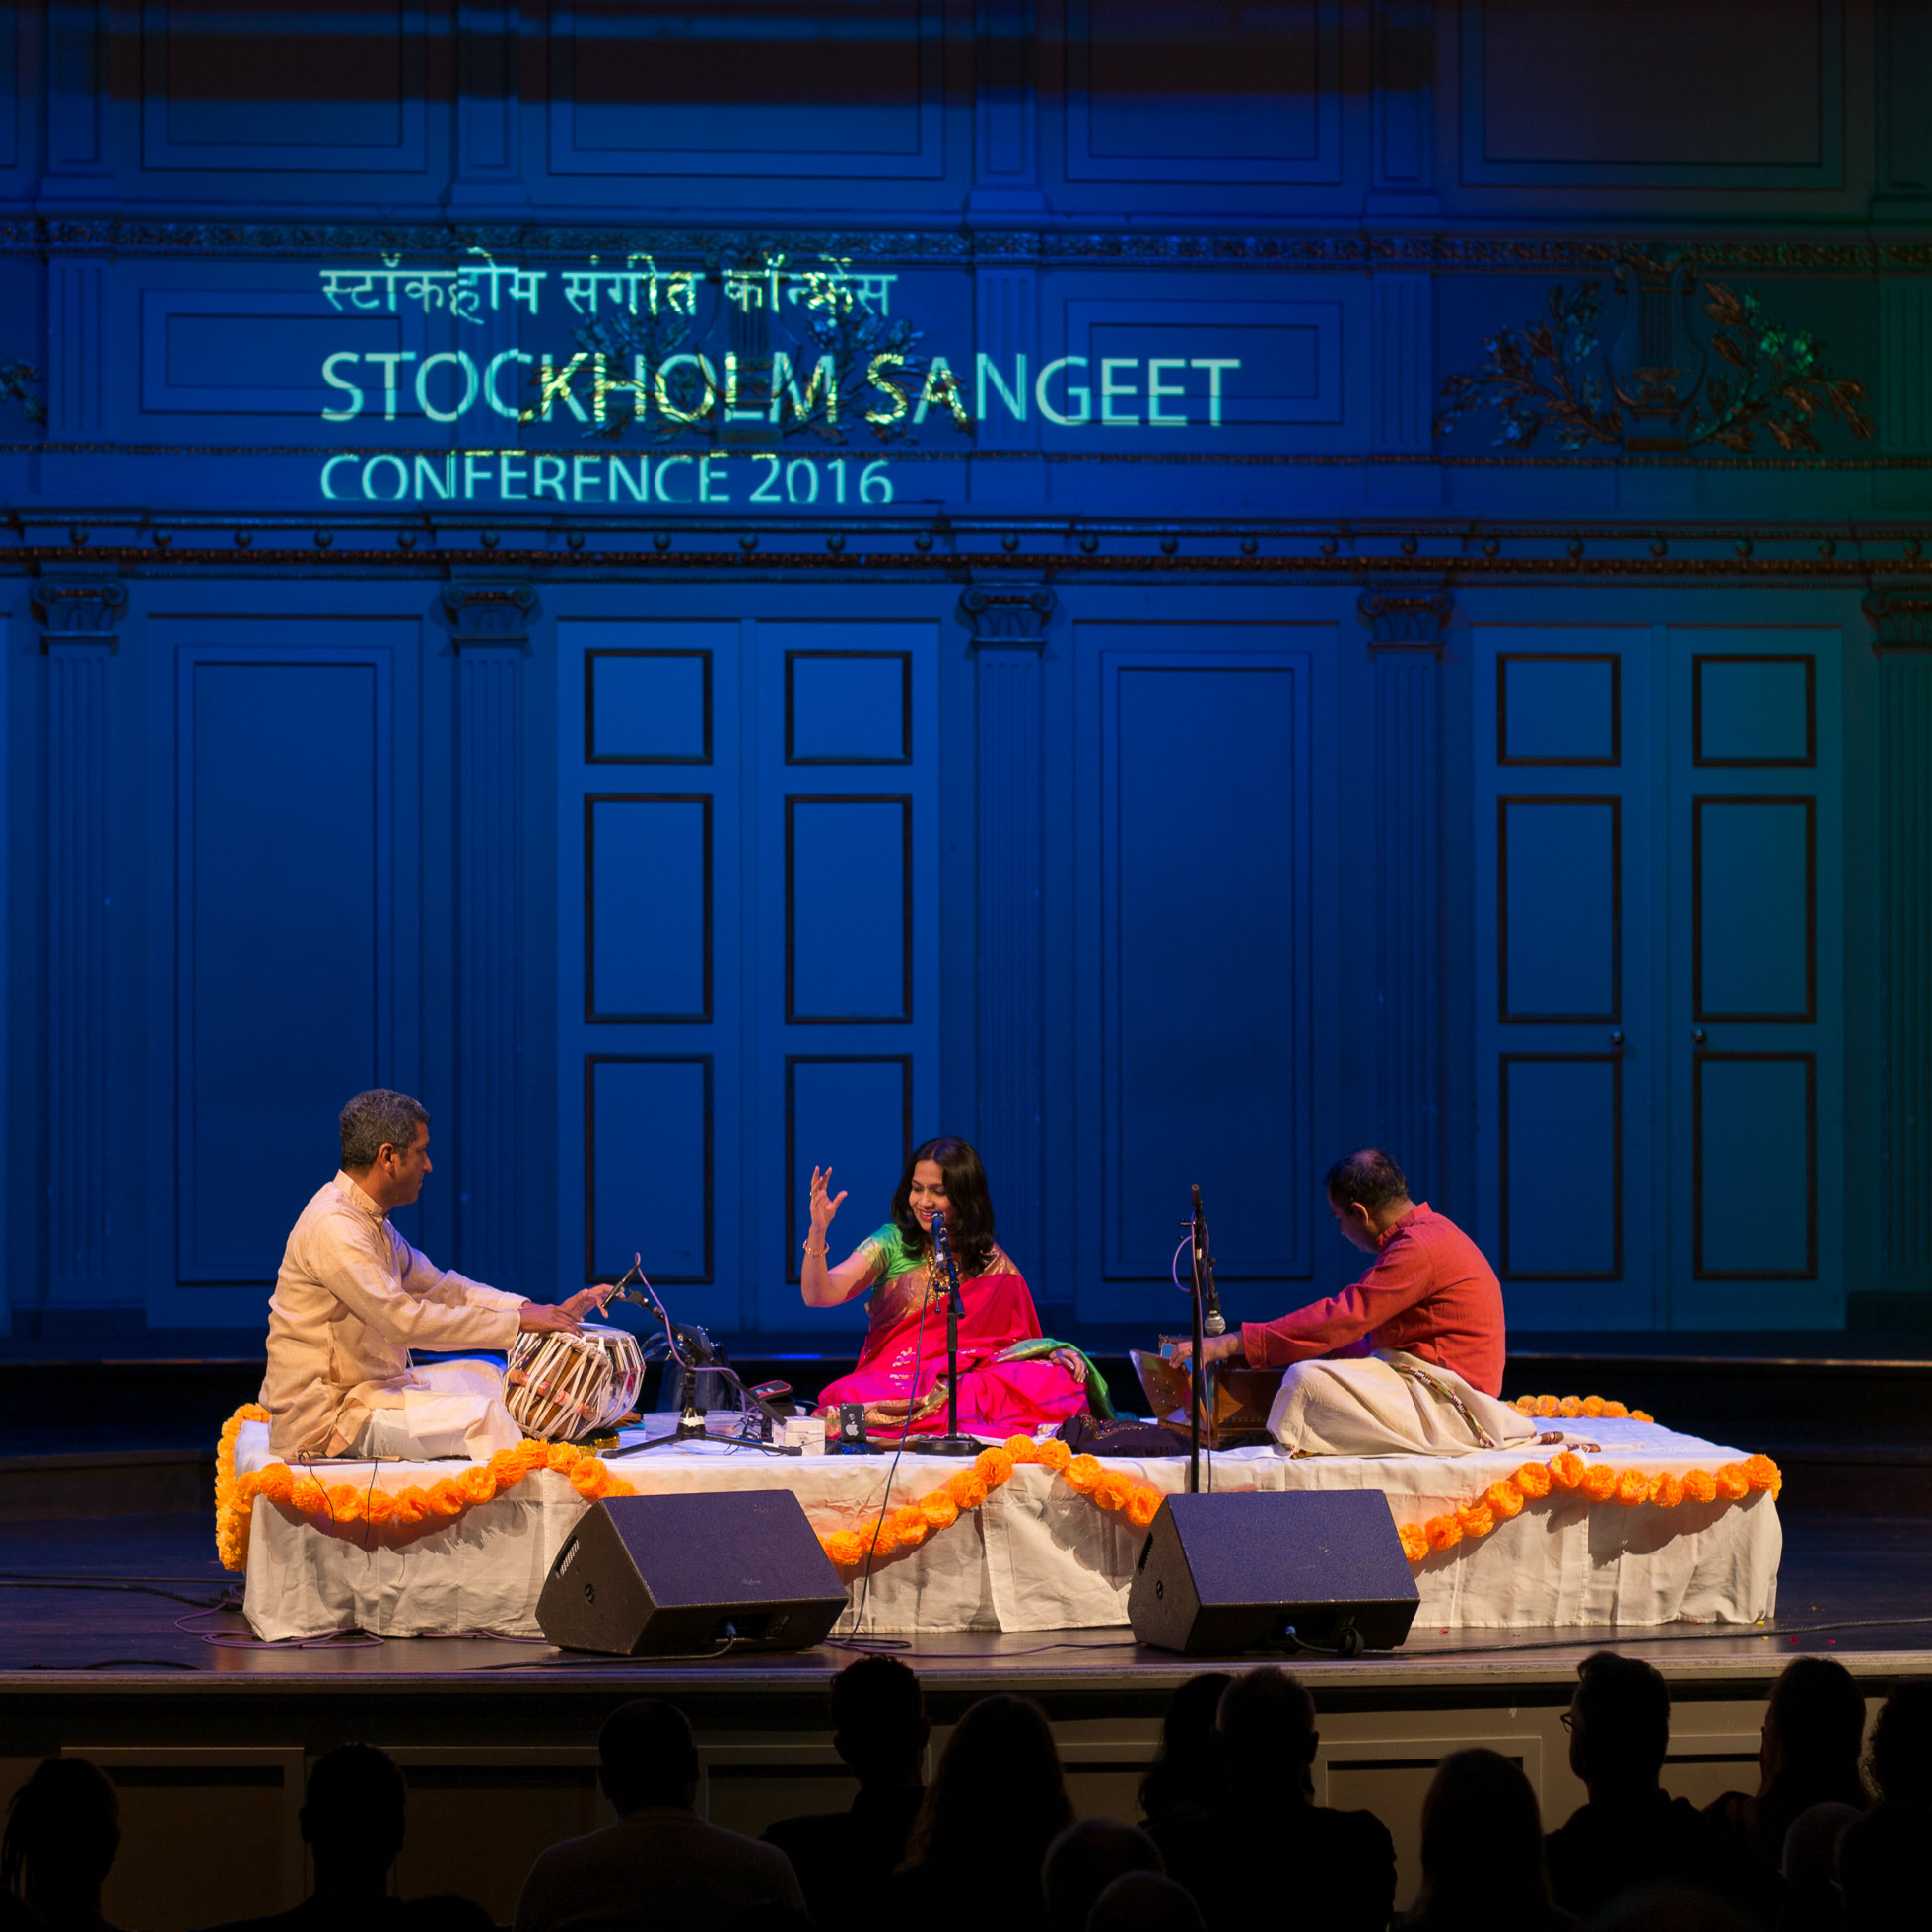 2016-10-16-stockholm-sangeet-conference-2016_2016-10-16_max-dahlstrand_0161